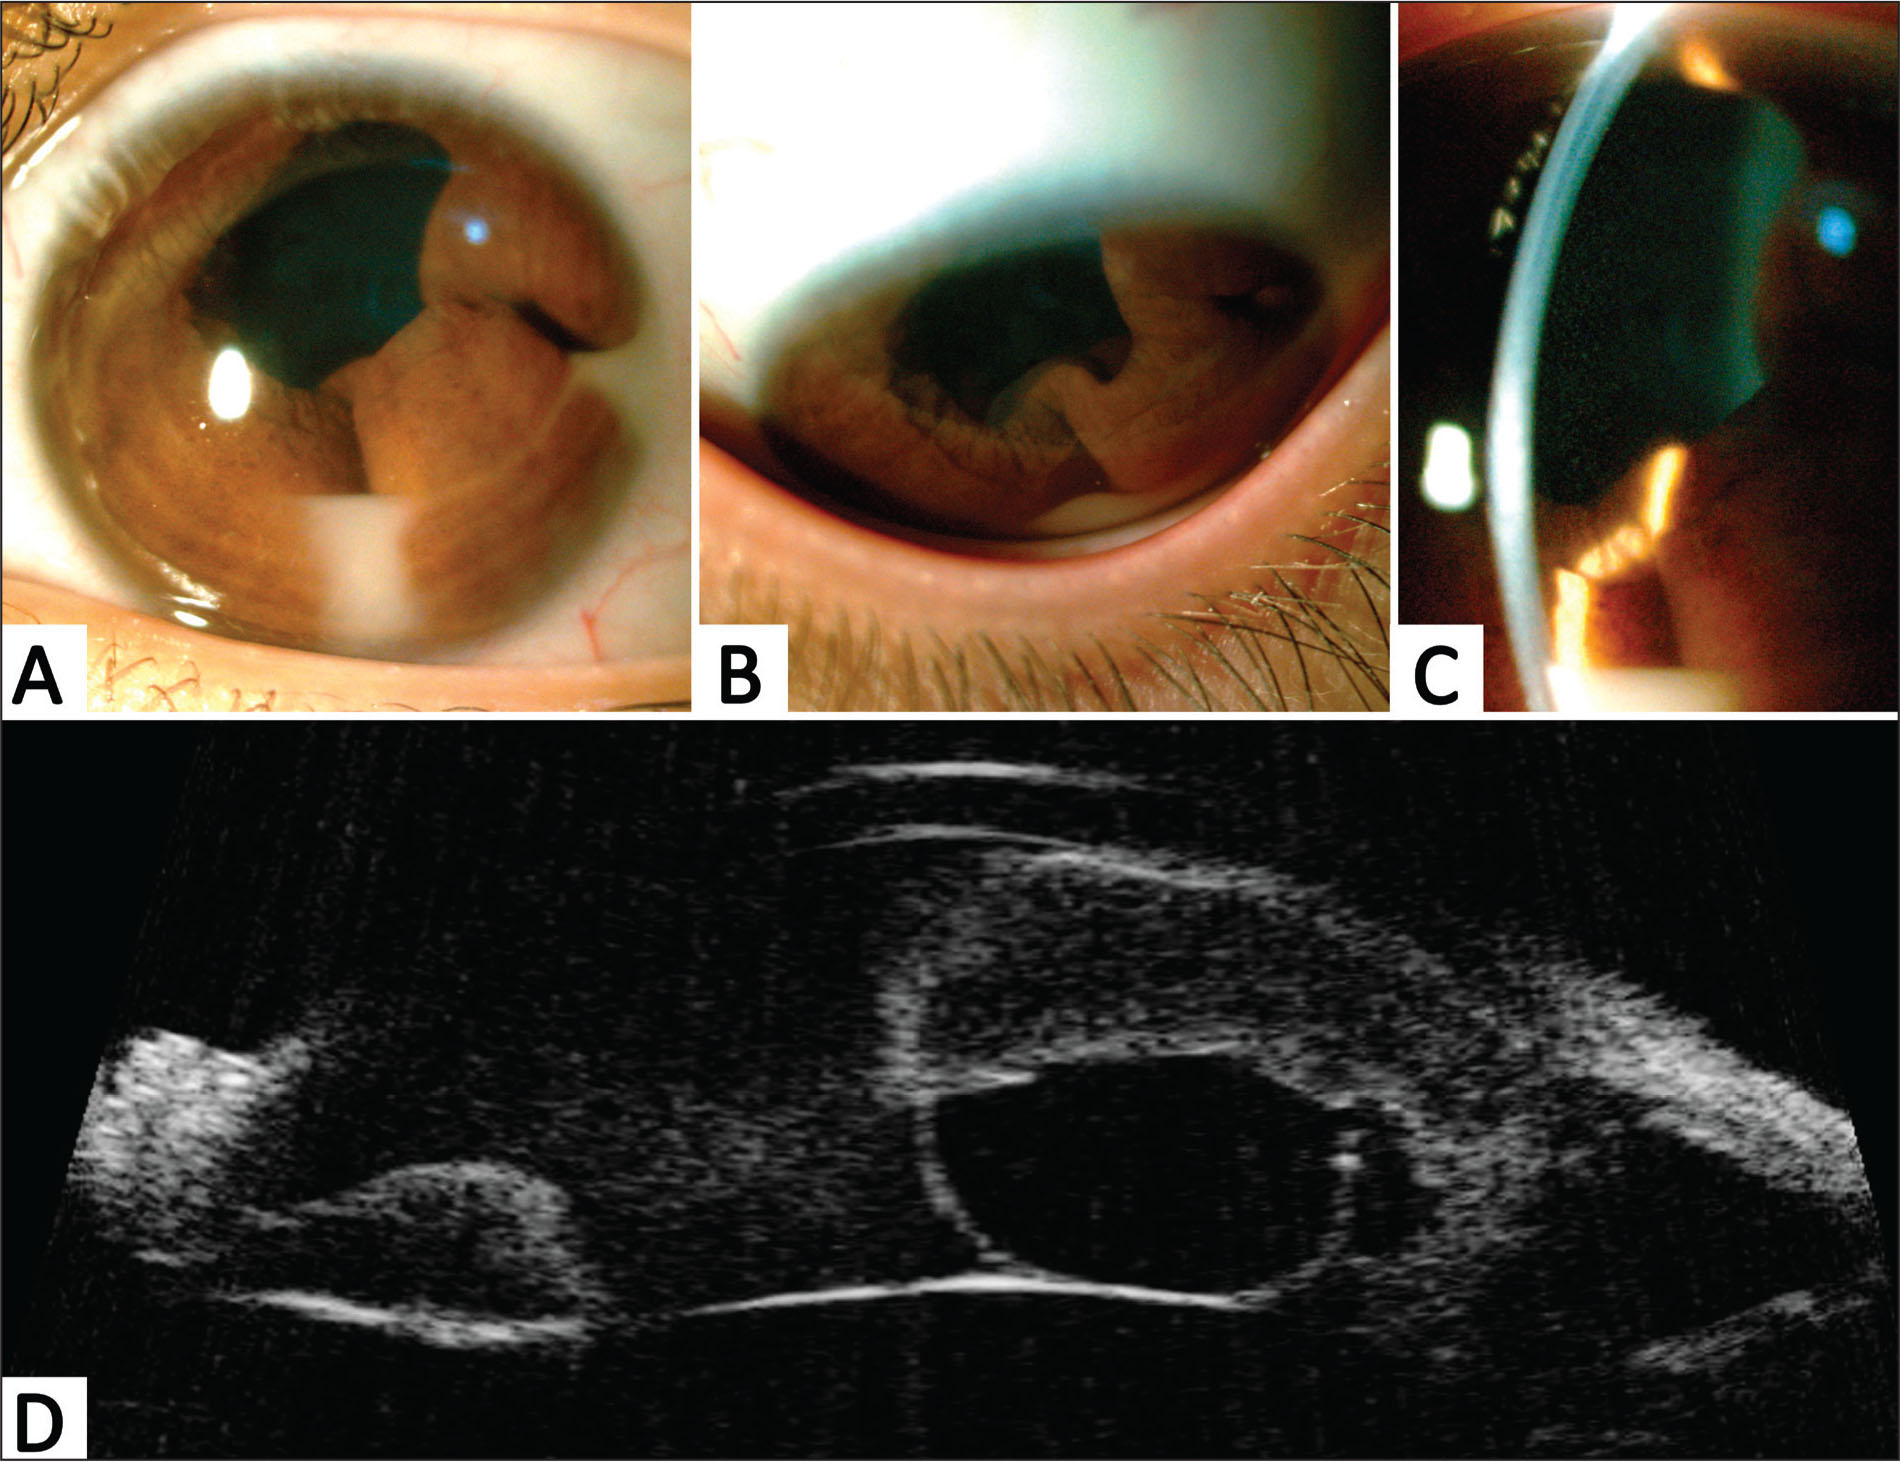 First ophthalmological evaluation at the 43rd week of the chemotherapy regimen. (A–C) Slit-lamp photographs showing iris thickening and folds predominantly from the 1- to 9-o'clock positions, iris retraction from the 12- to 1-o'clock positions, small and diffuse keratic precipitates, and 4+/4 anterior chamber reaction with pseudohypopyon at the 3- and 6-o'clock positions. (D) Axial ultrasound biomicroscopy showing thickness of the iris and ciliary body associated with a cyst of the iris pigment epithelium at the 6-o'clock position.